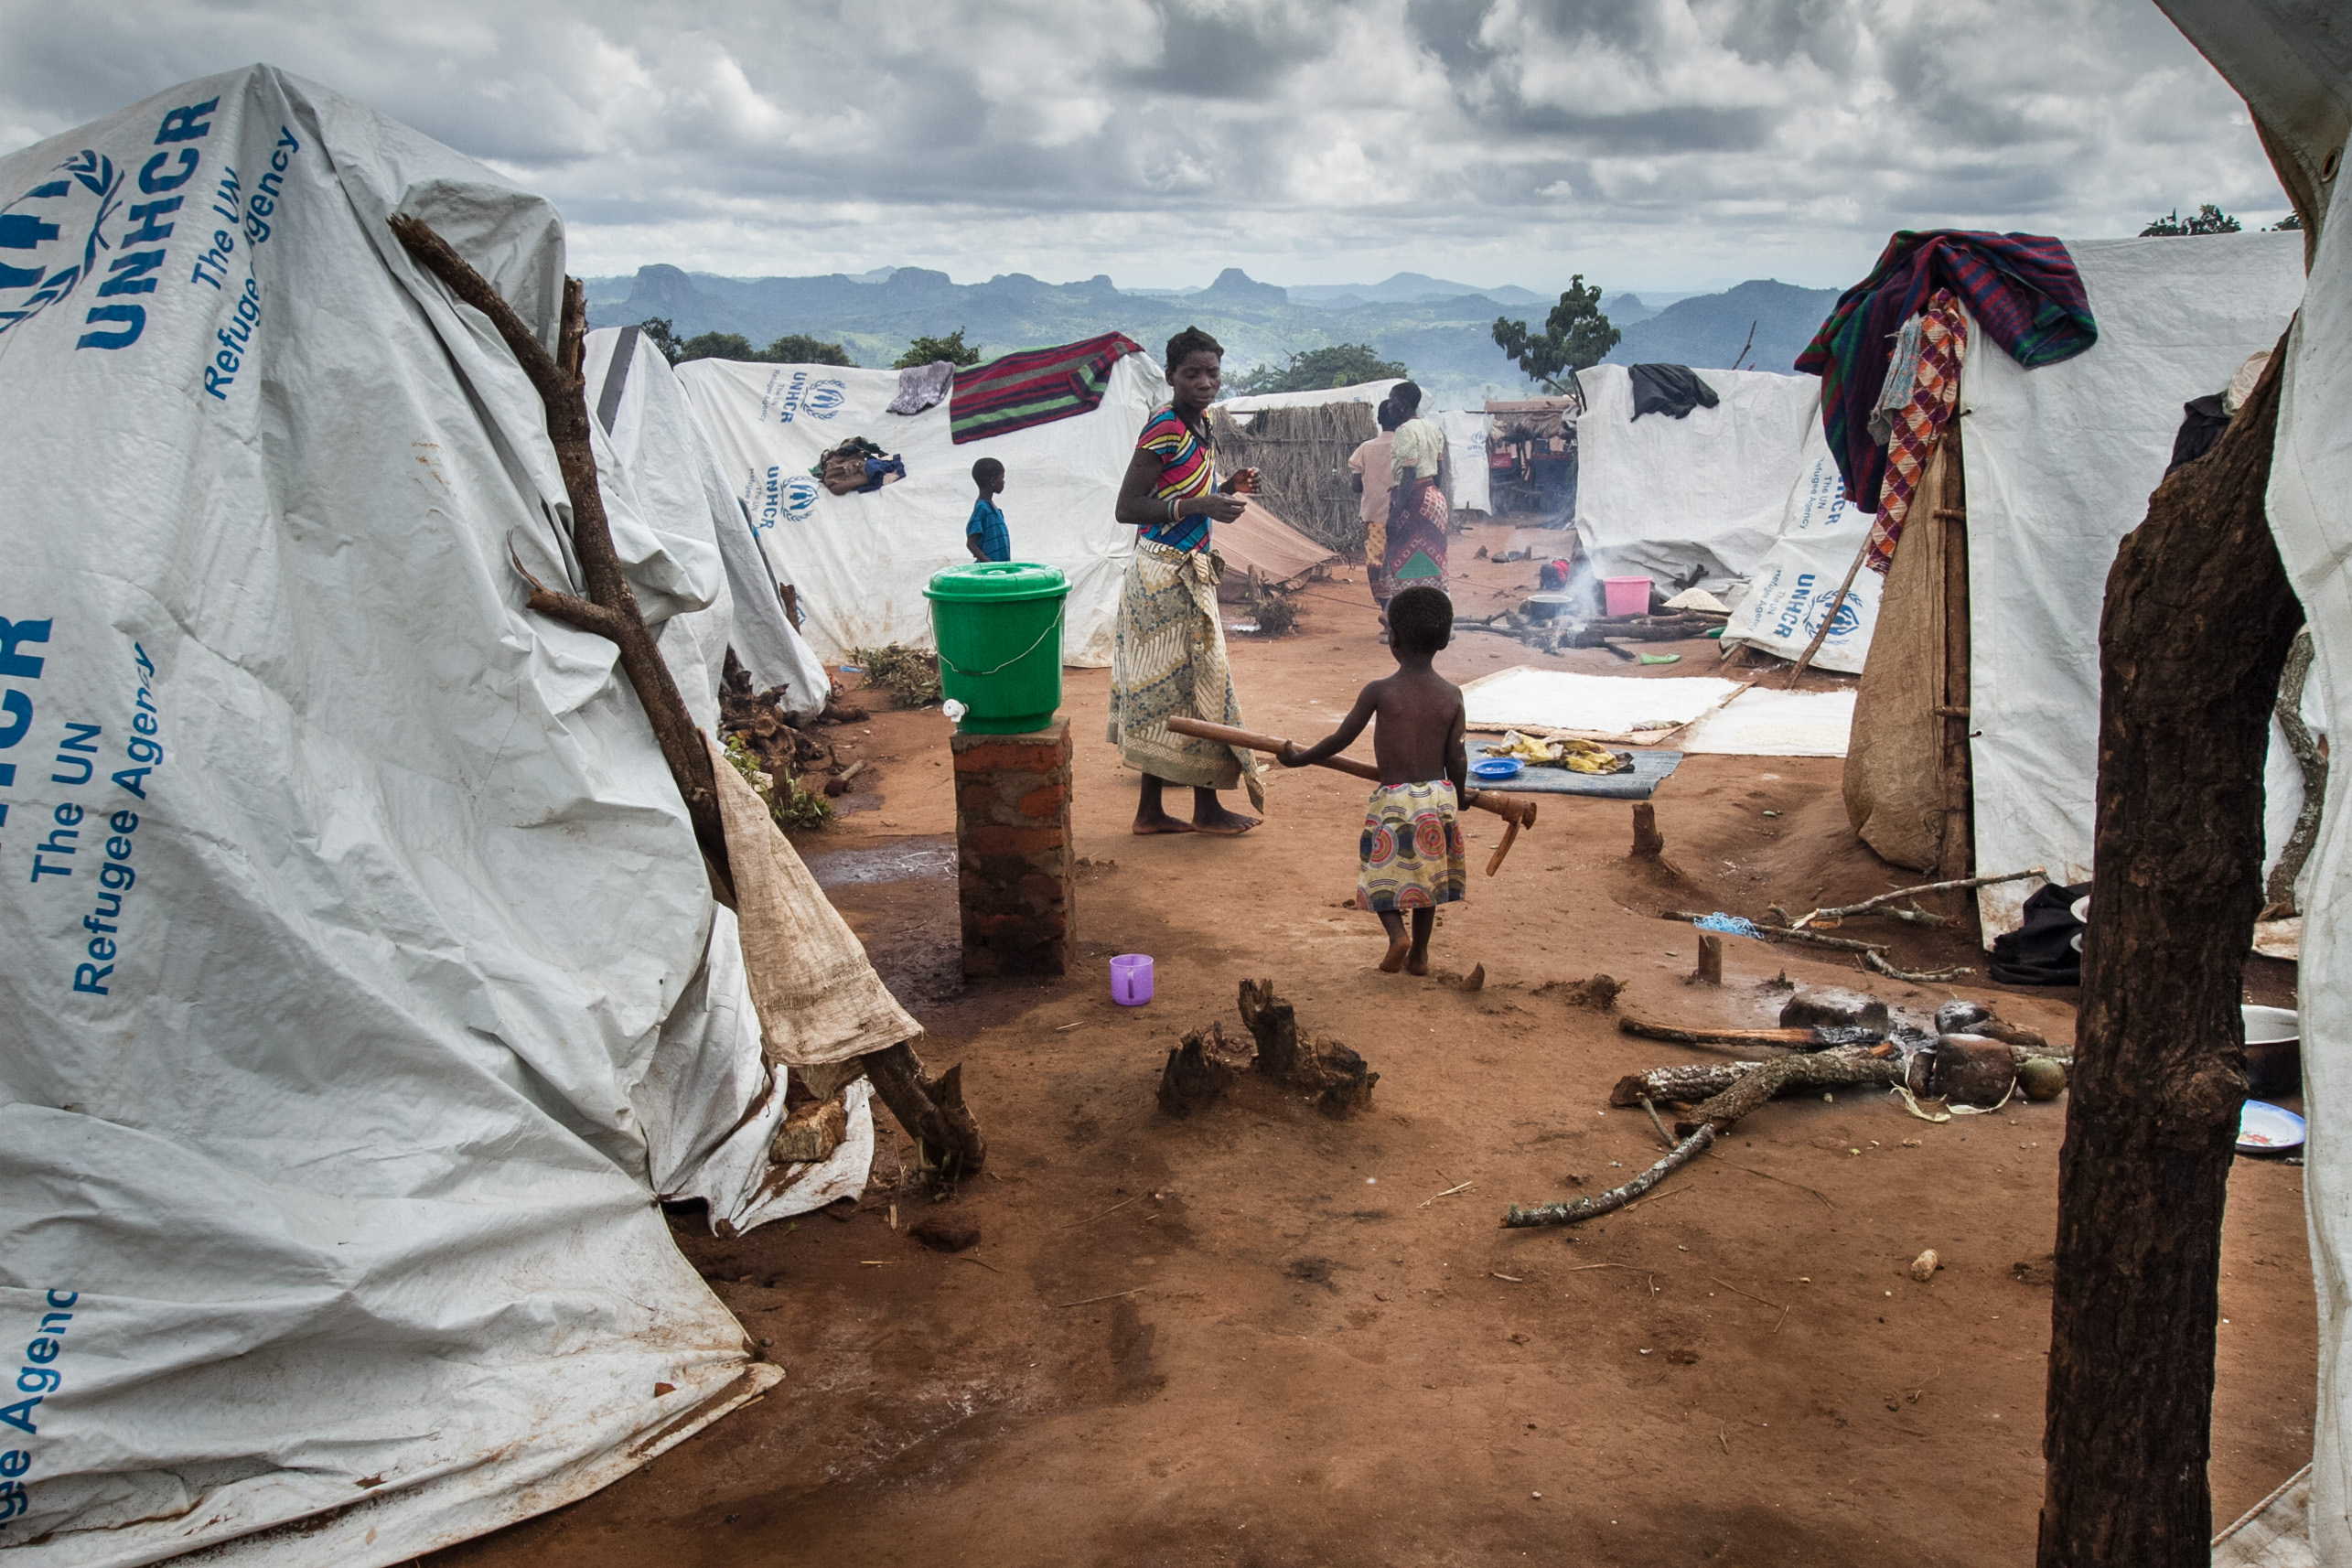 Kapise refugee camp for refugees from Mozambique, Mwanza, Malawi. © 2016 Erico Waga, Courtesy of Photoshare